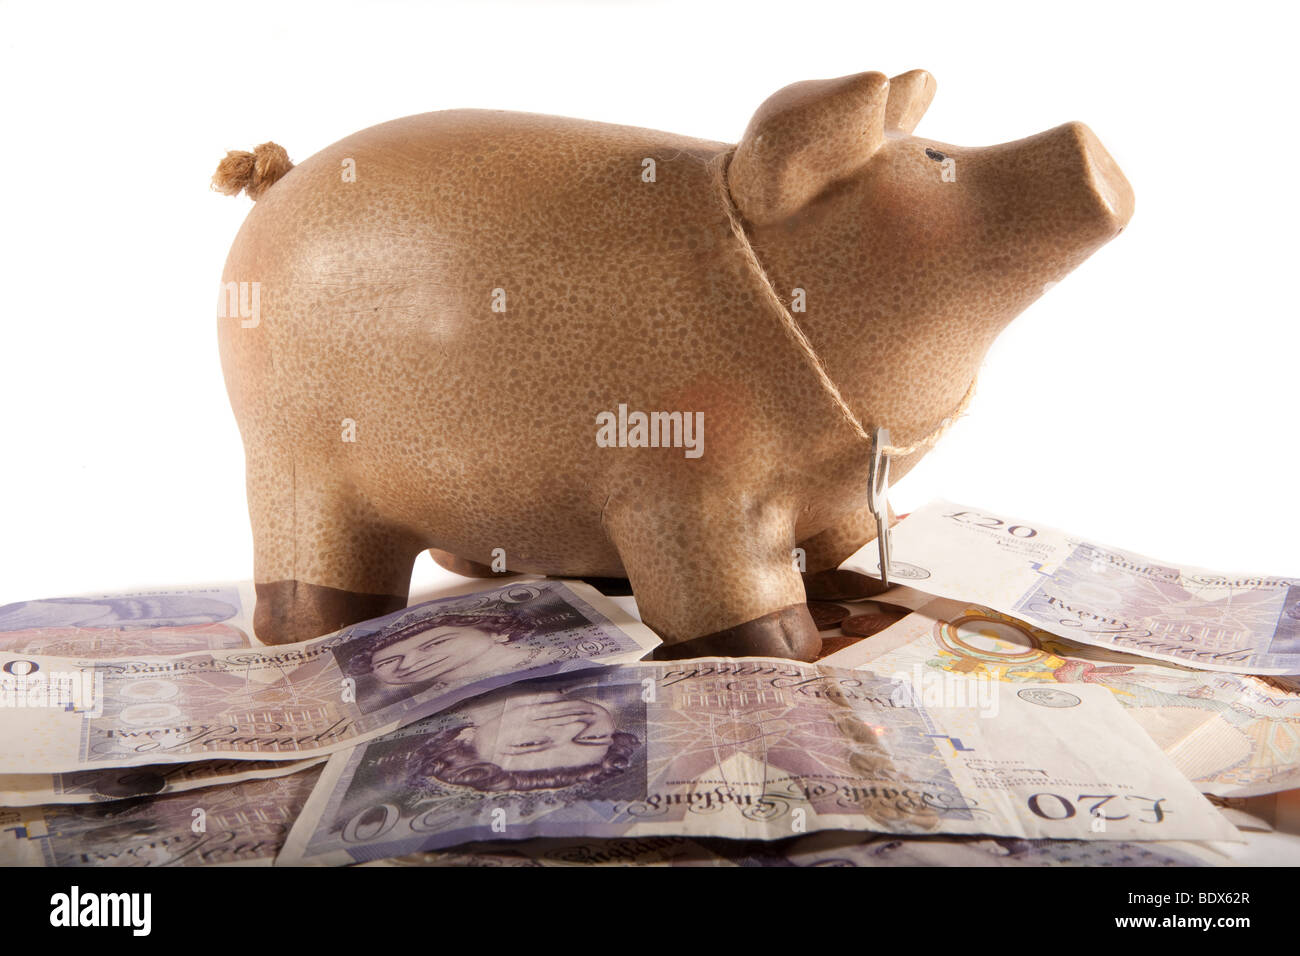 Piggy bank money box with key standing on top of a pile of £20 notes Stock Photo